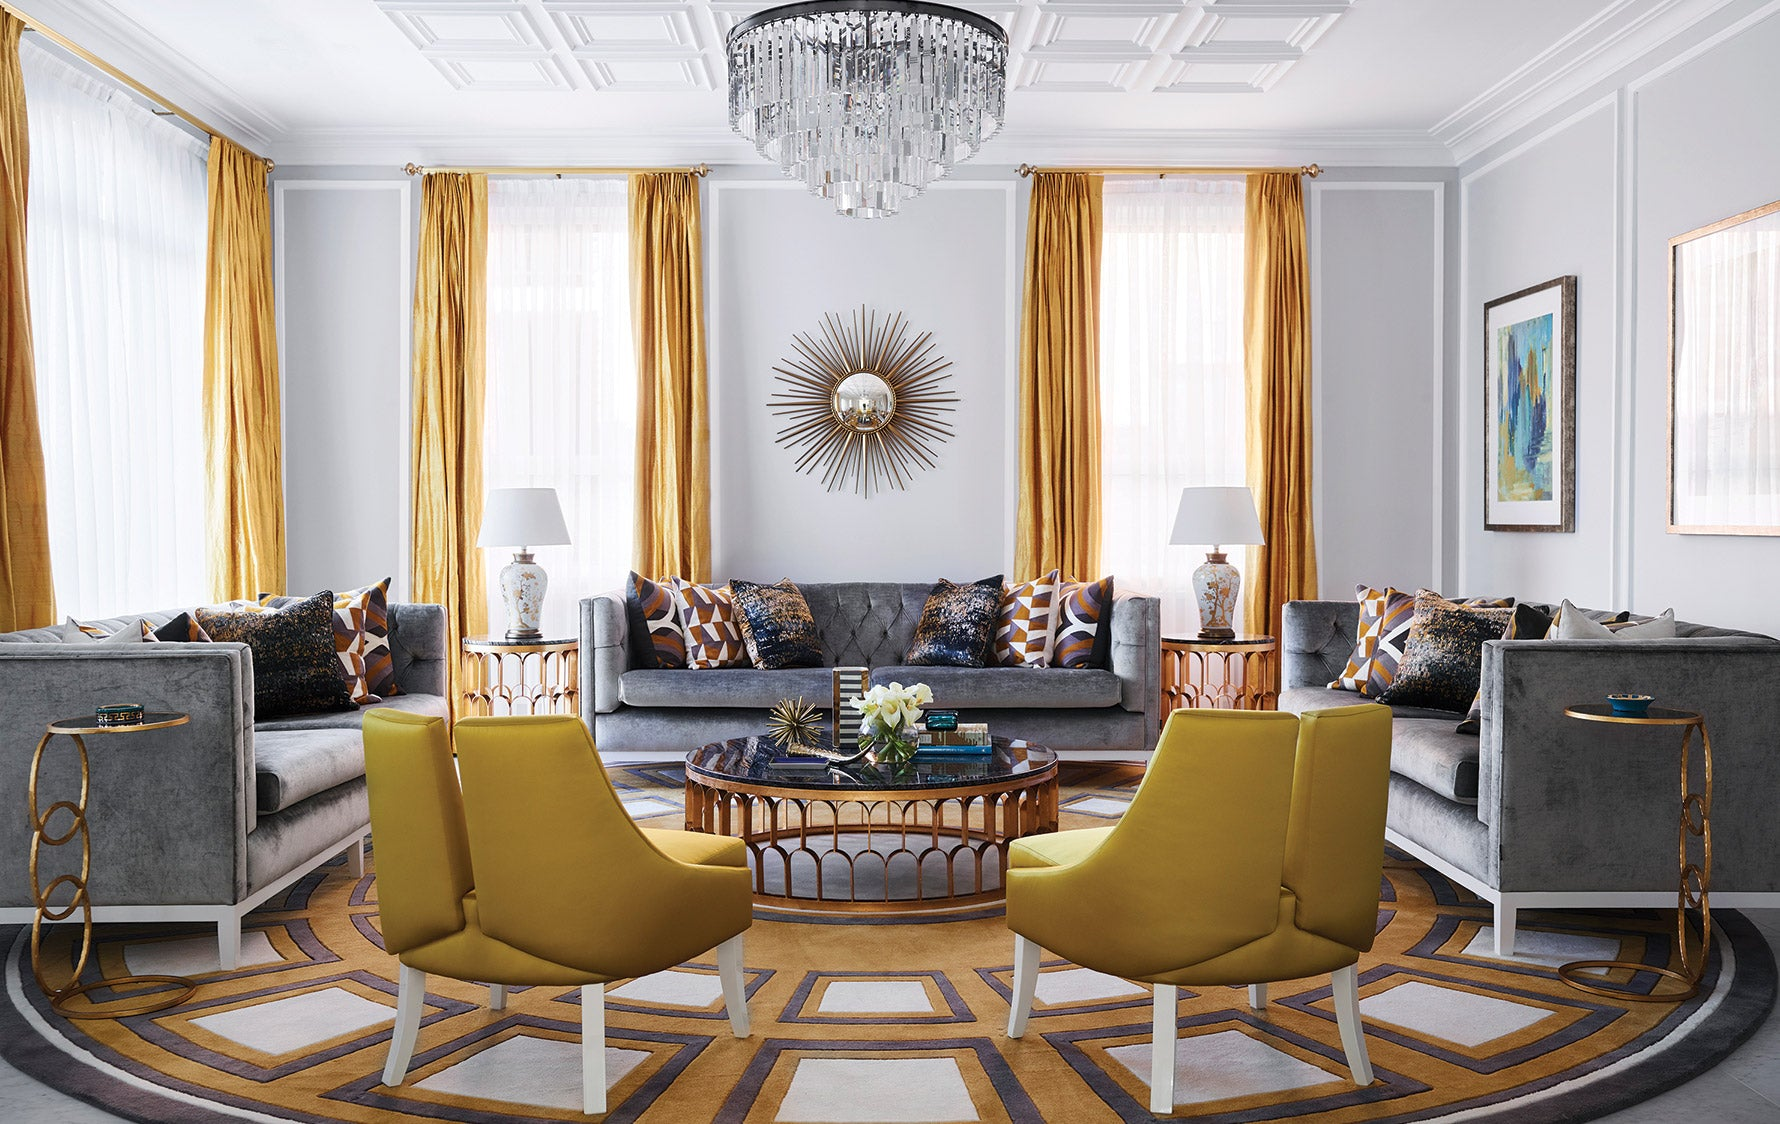 How To Get Your Room Proportions Right In Interior Design - Greg Natale - LuxDeco Style Guide